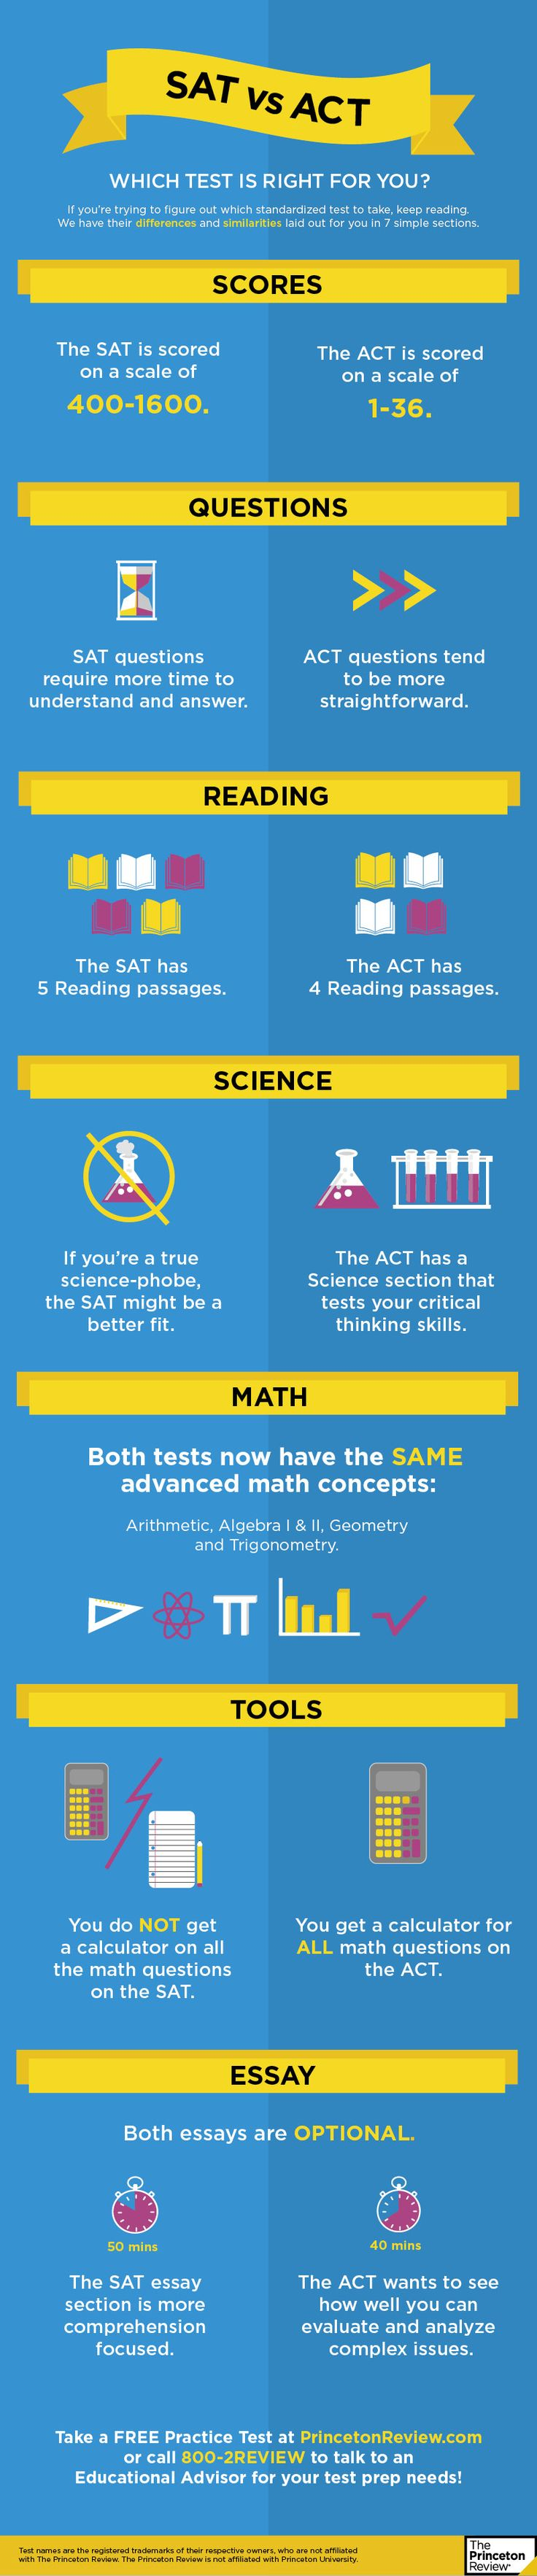 New SAT vs ACT Infographic v2